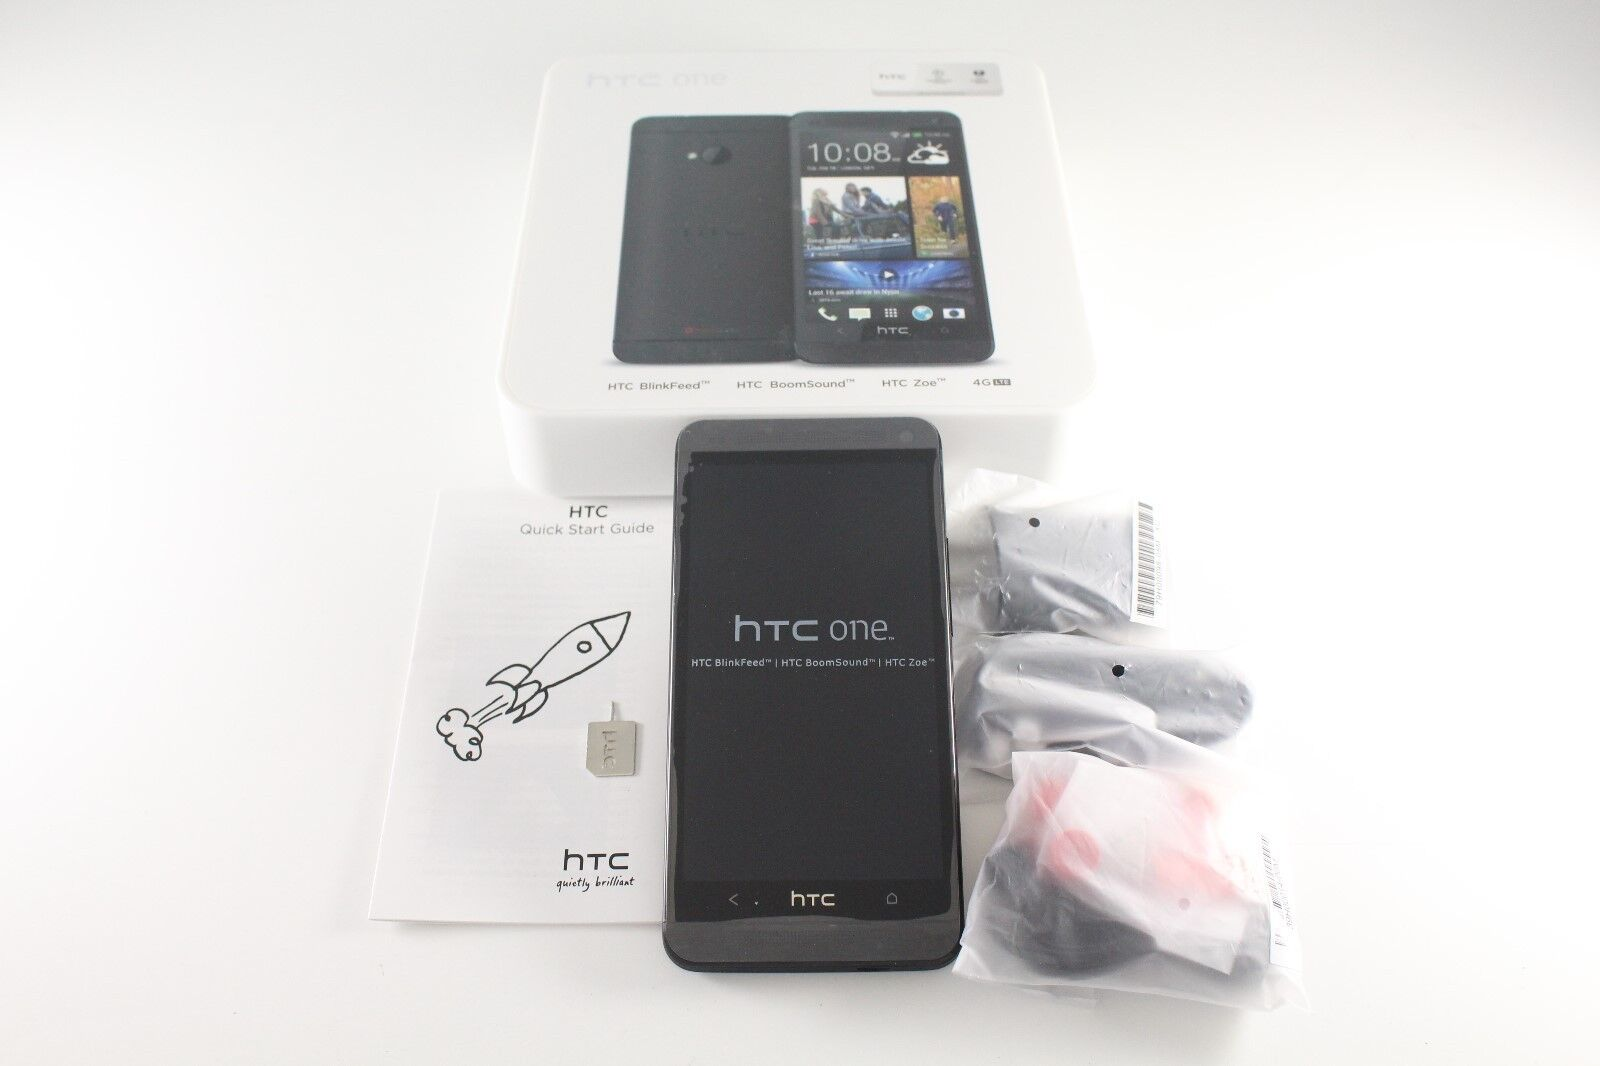 Htc One - New HTC One M7 Black 32GB Android Quad Core LTE WiFi Unlocked GSM Smartphone